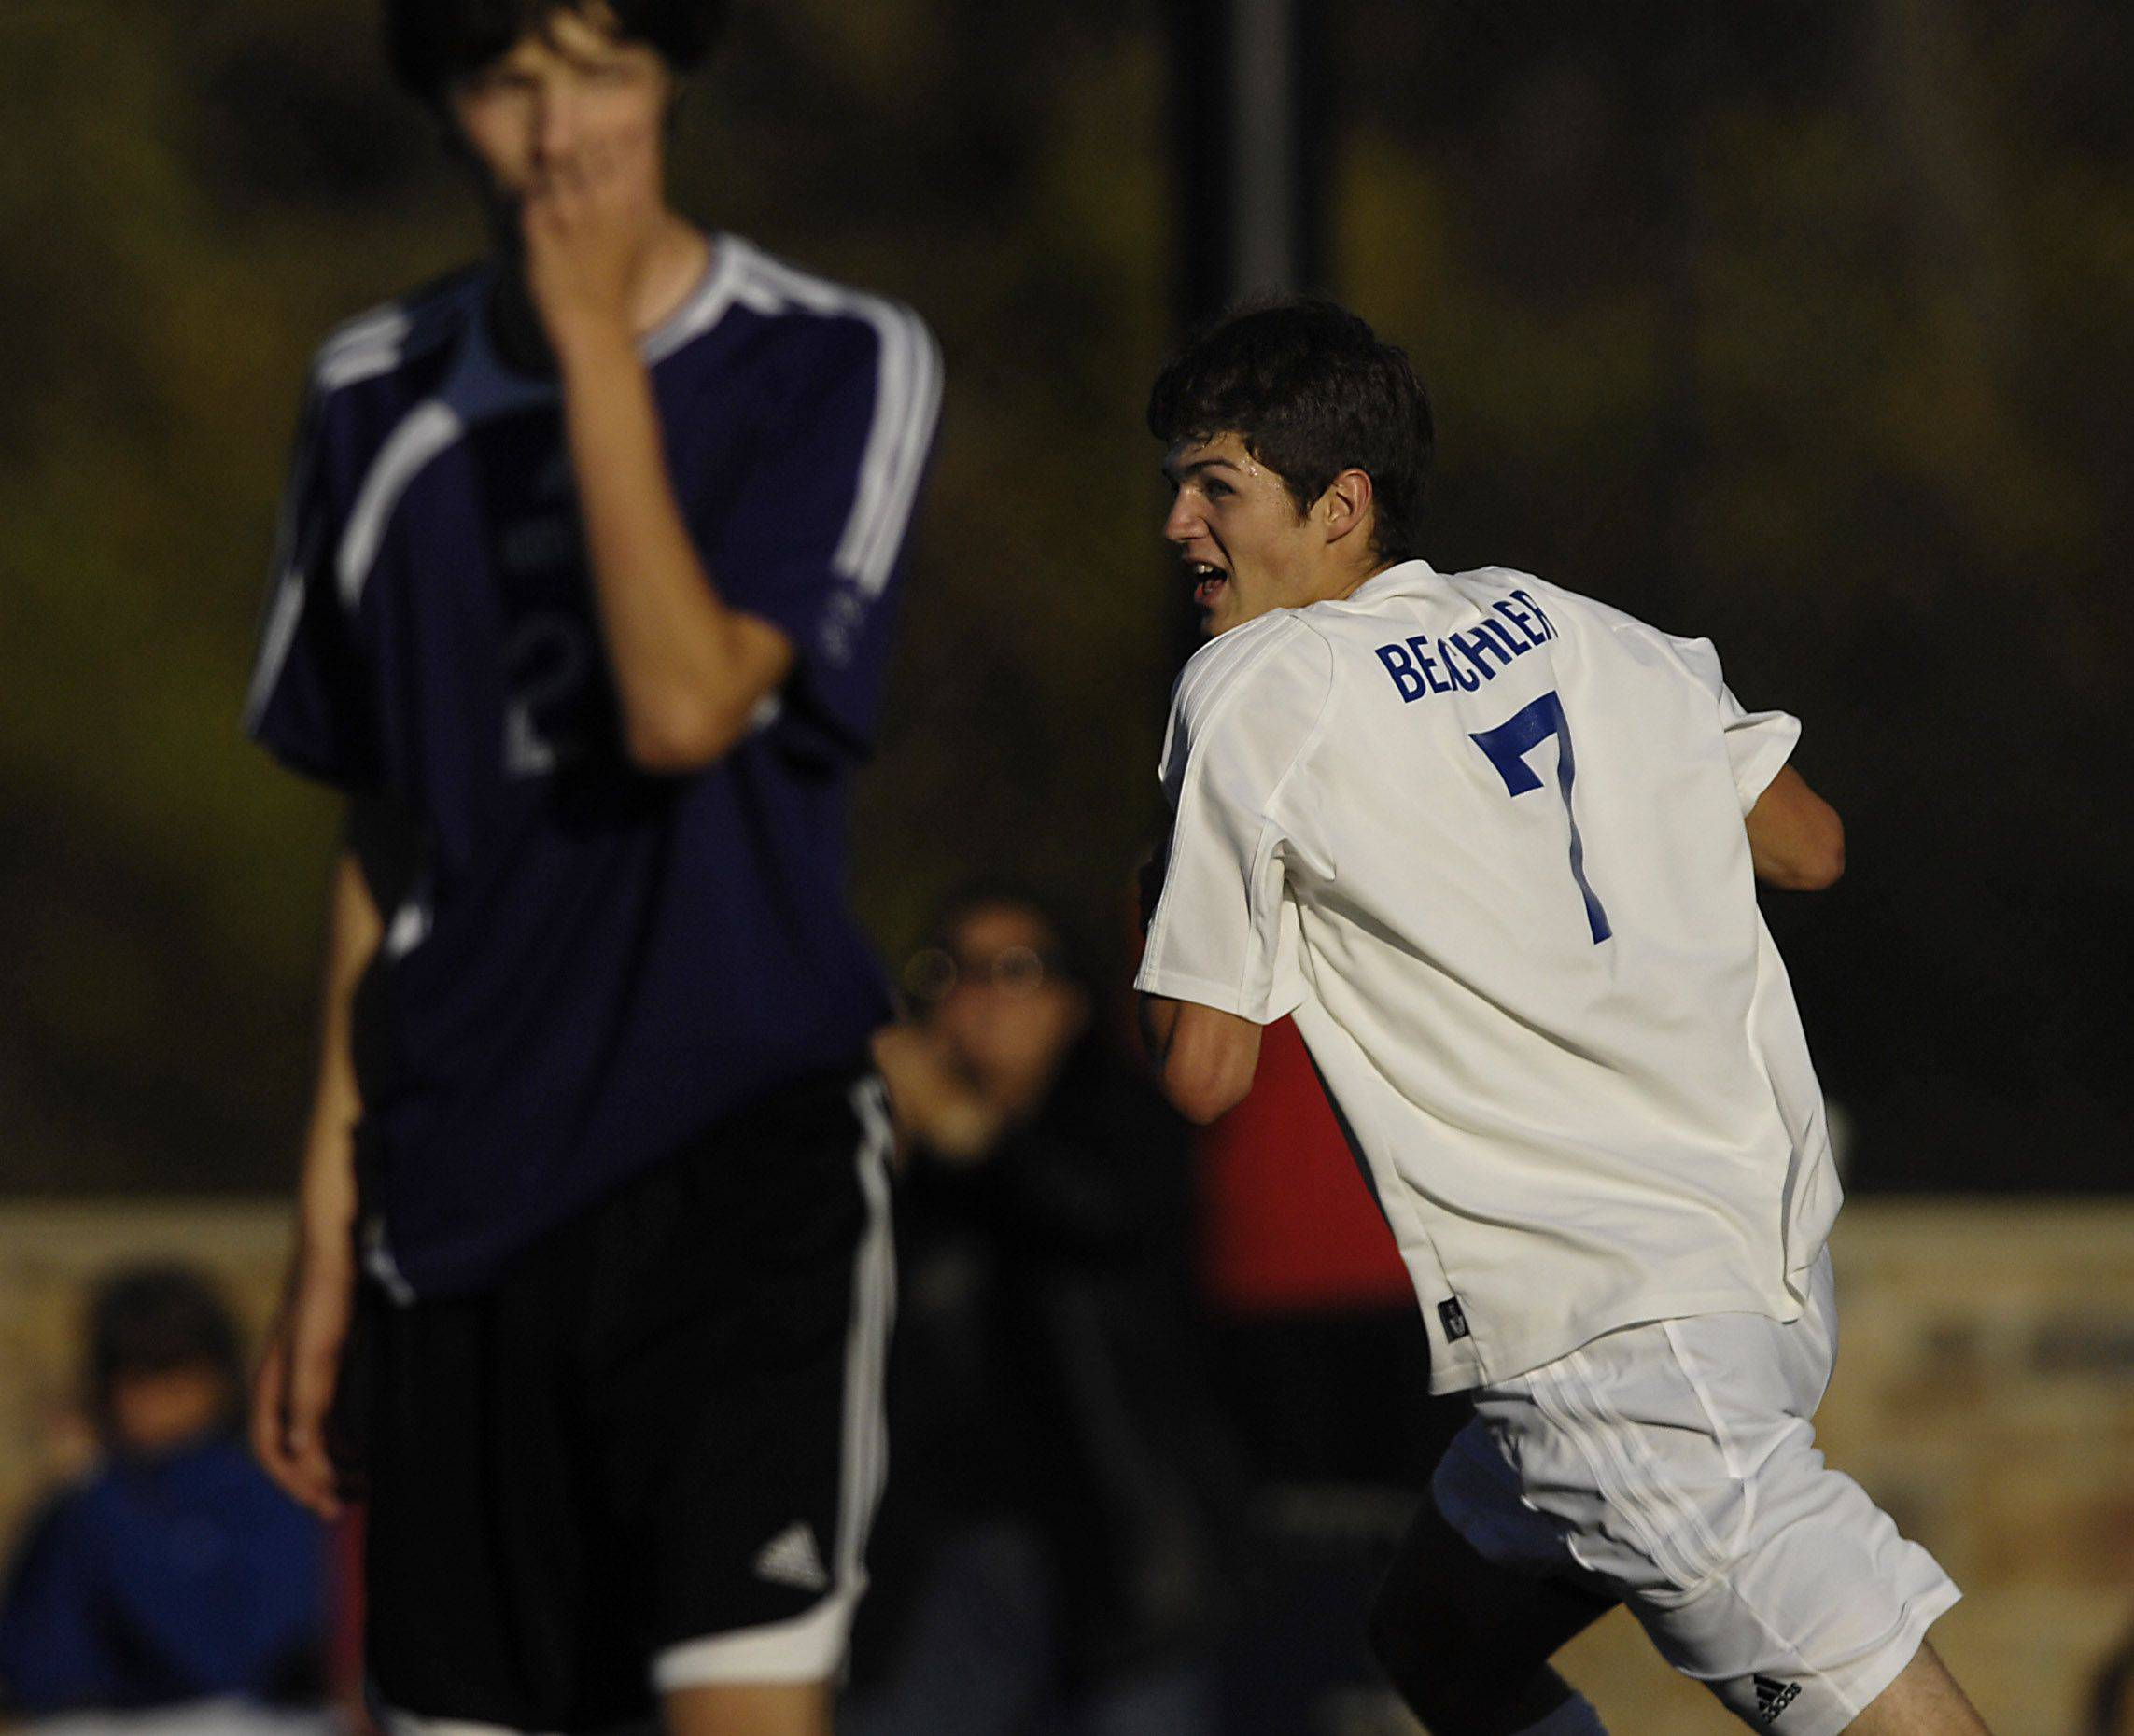 Westminster Christian's Josh Beachler turns and looks for teammates after scoring the first goal against North Shore Country Day for the Class 1A regional championship Tuesday in Elgin.